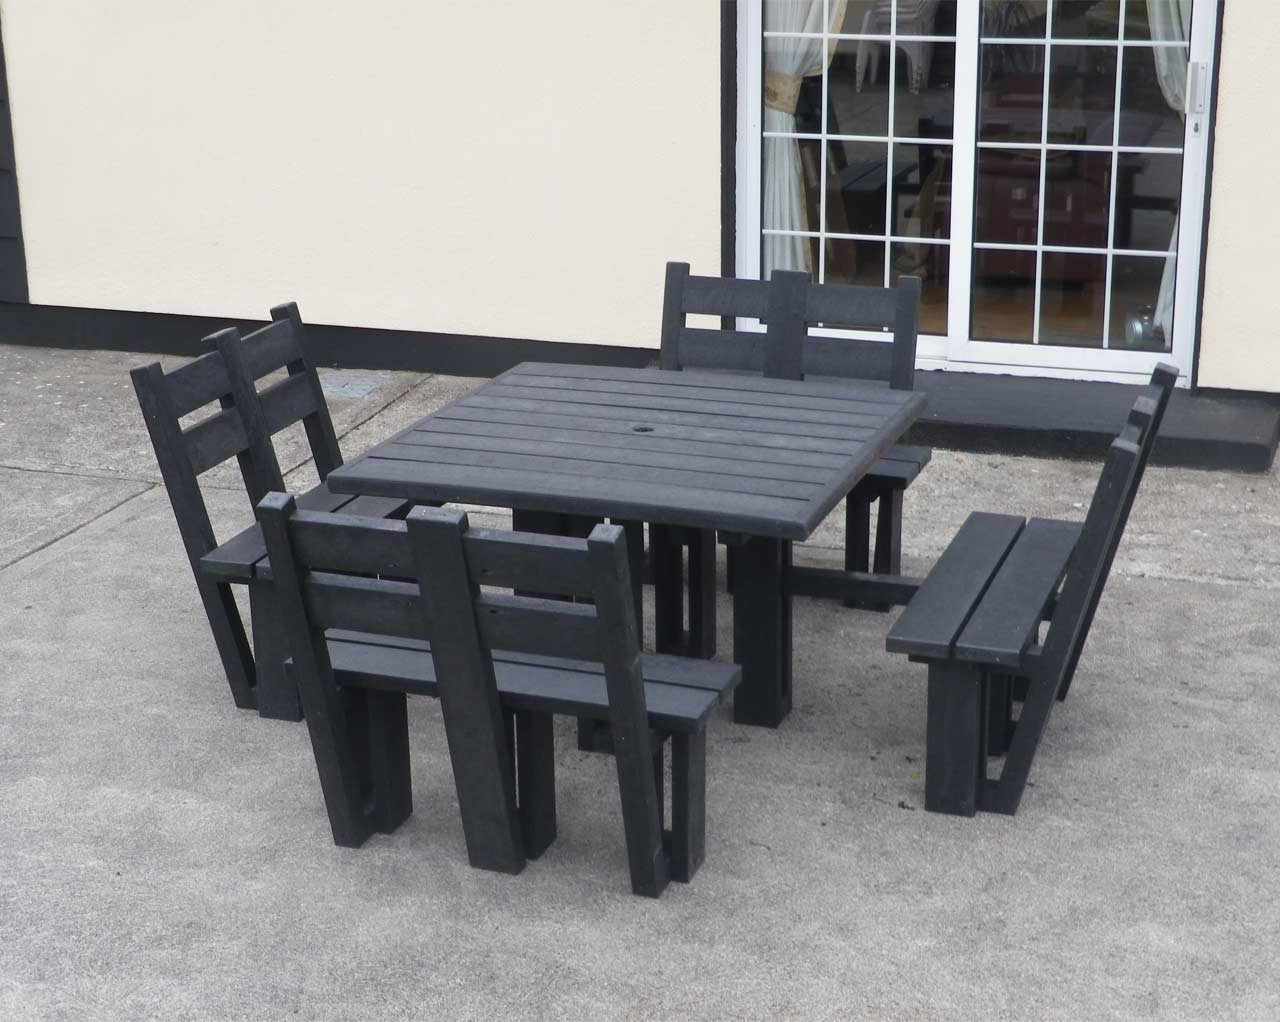 8 sided picnic table with back